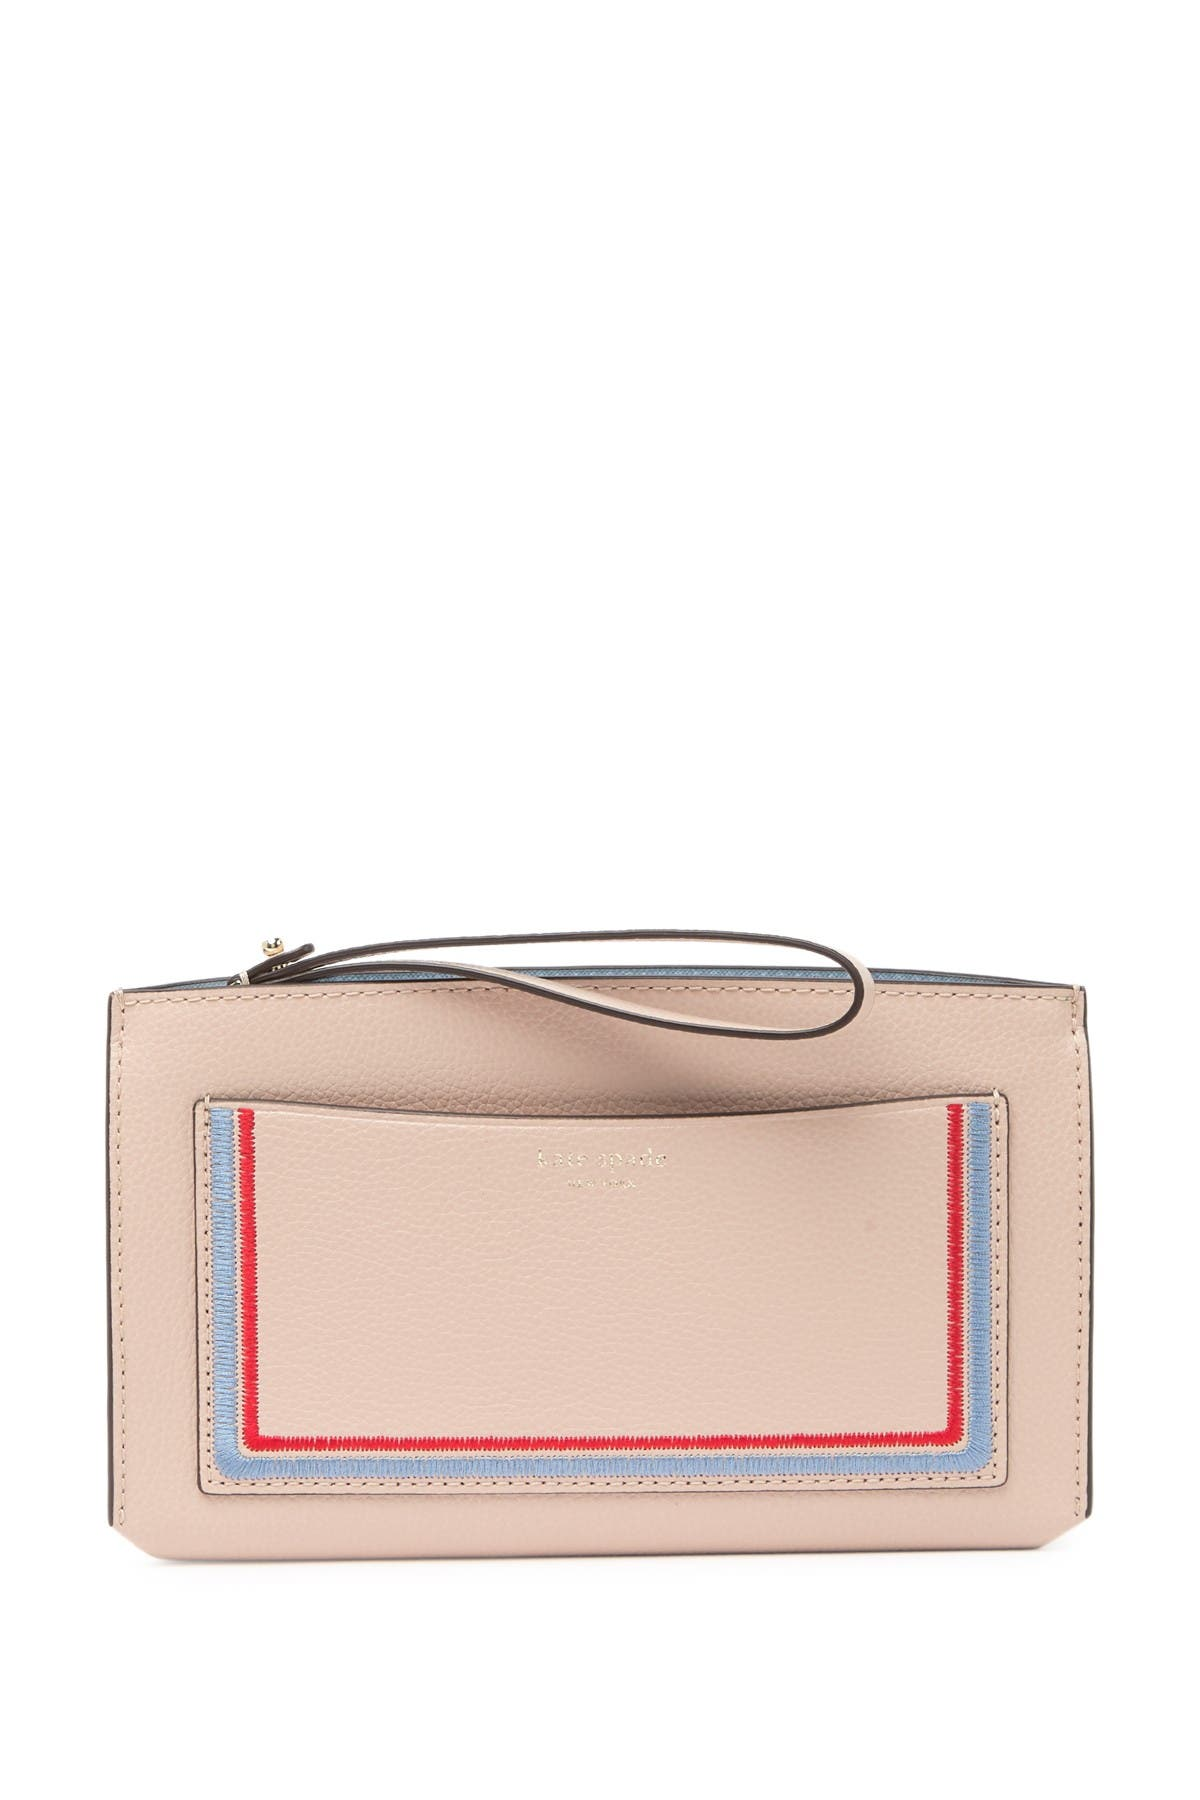 Image of kate spade new york leather eva embroidered wallet clutch